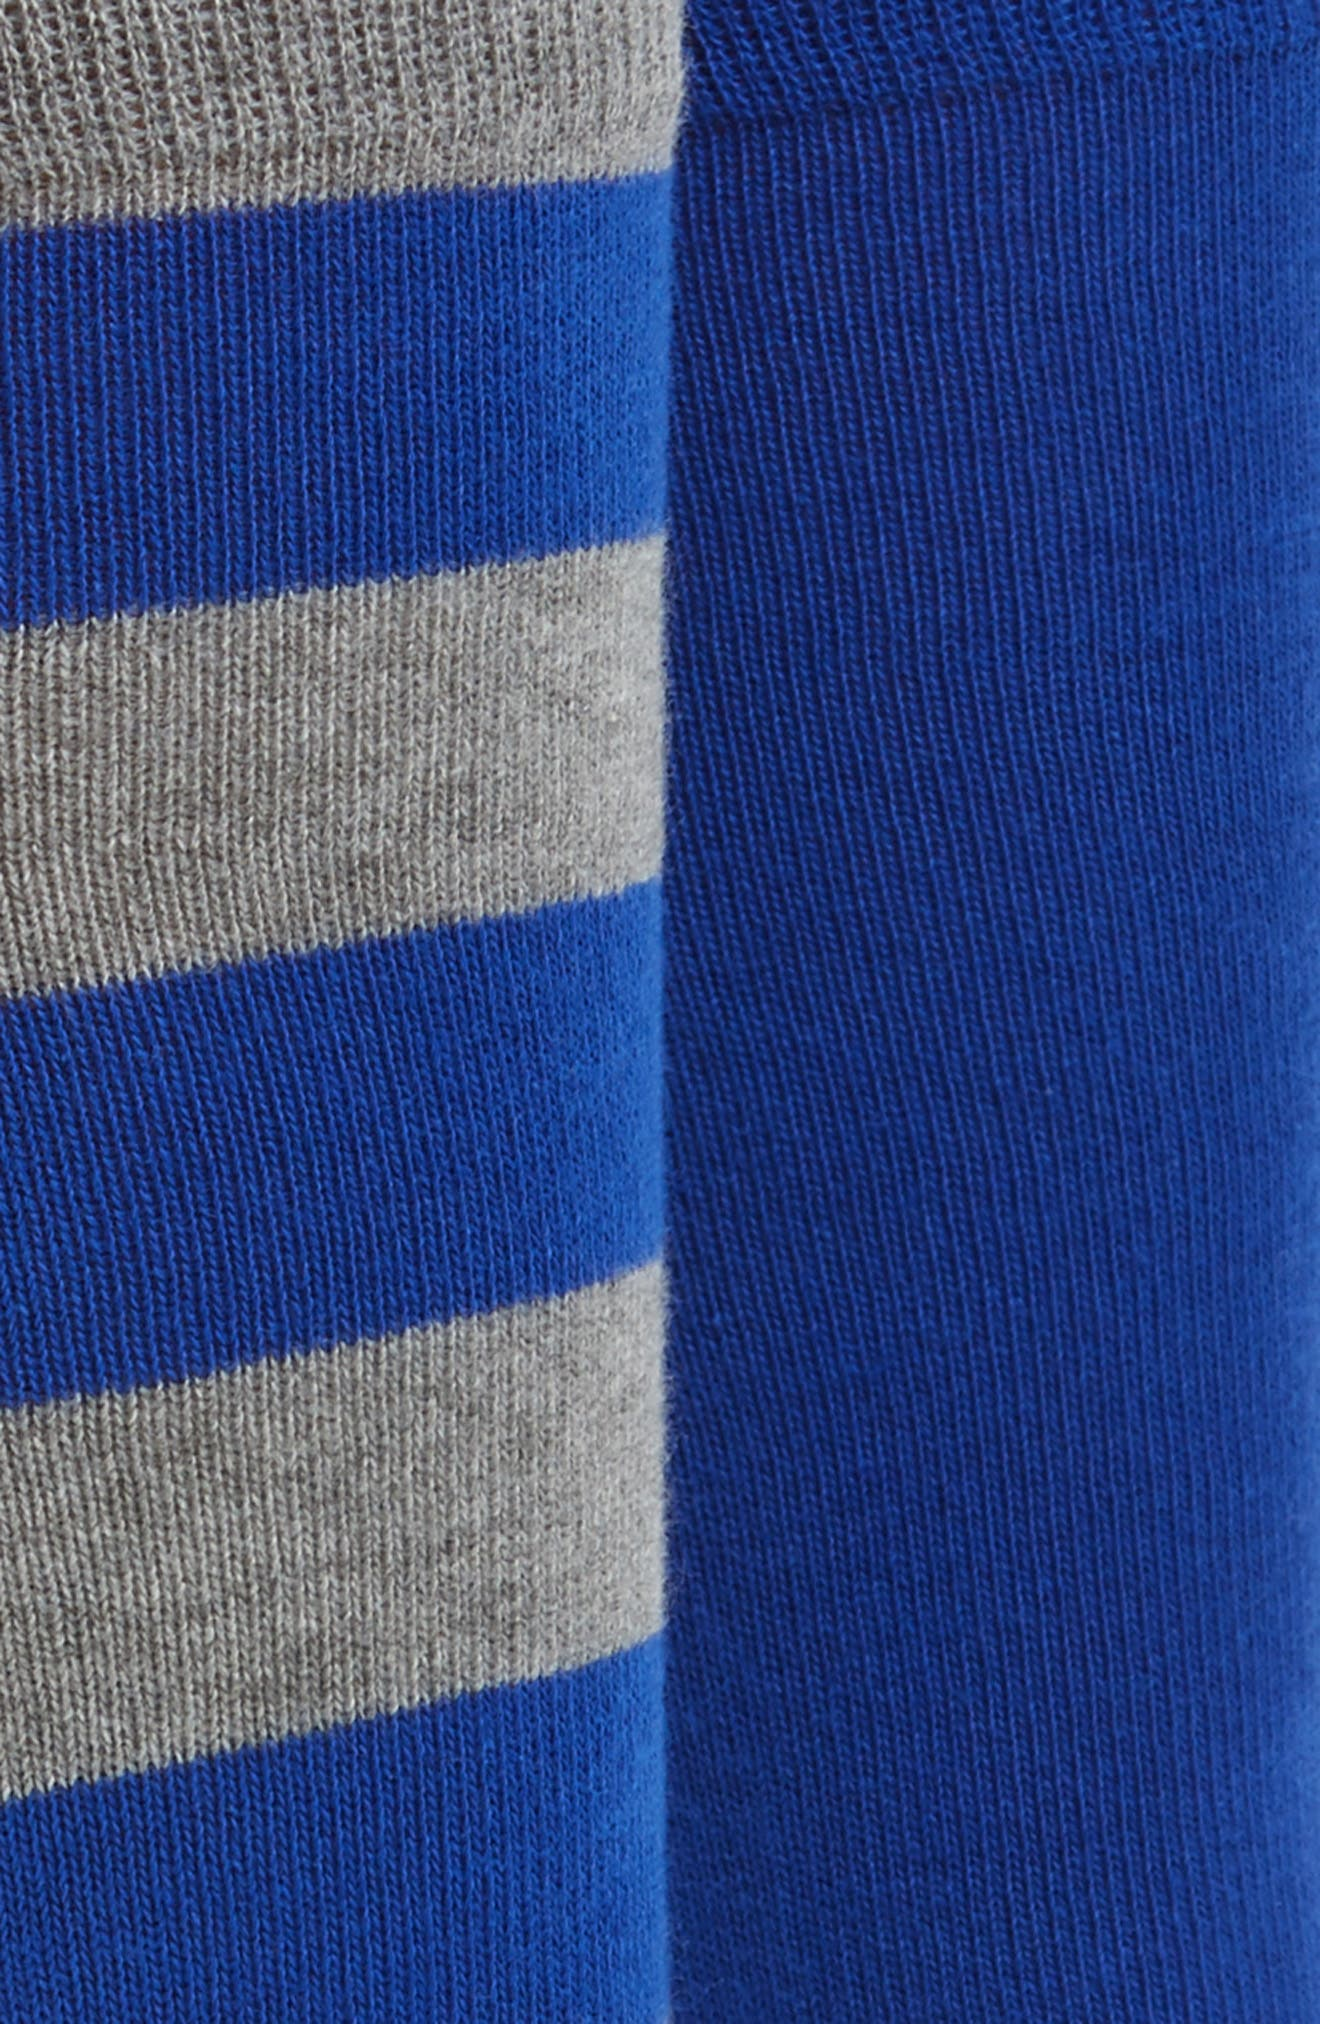 Alternate Image 2  - Polo Ralph Lauren Cotton Blend Socks (2-Pack)